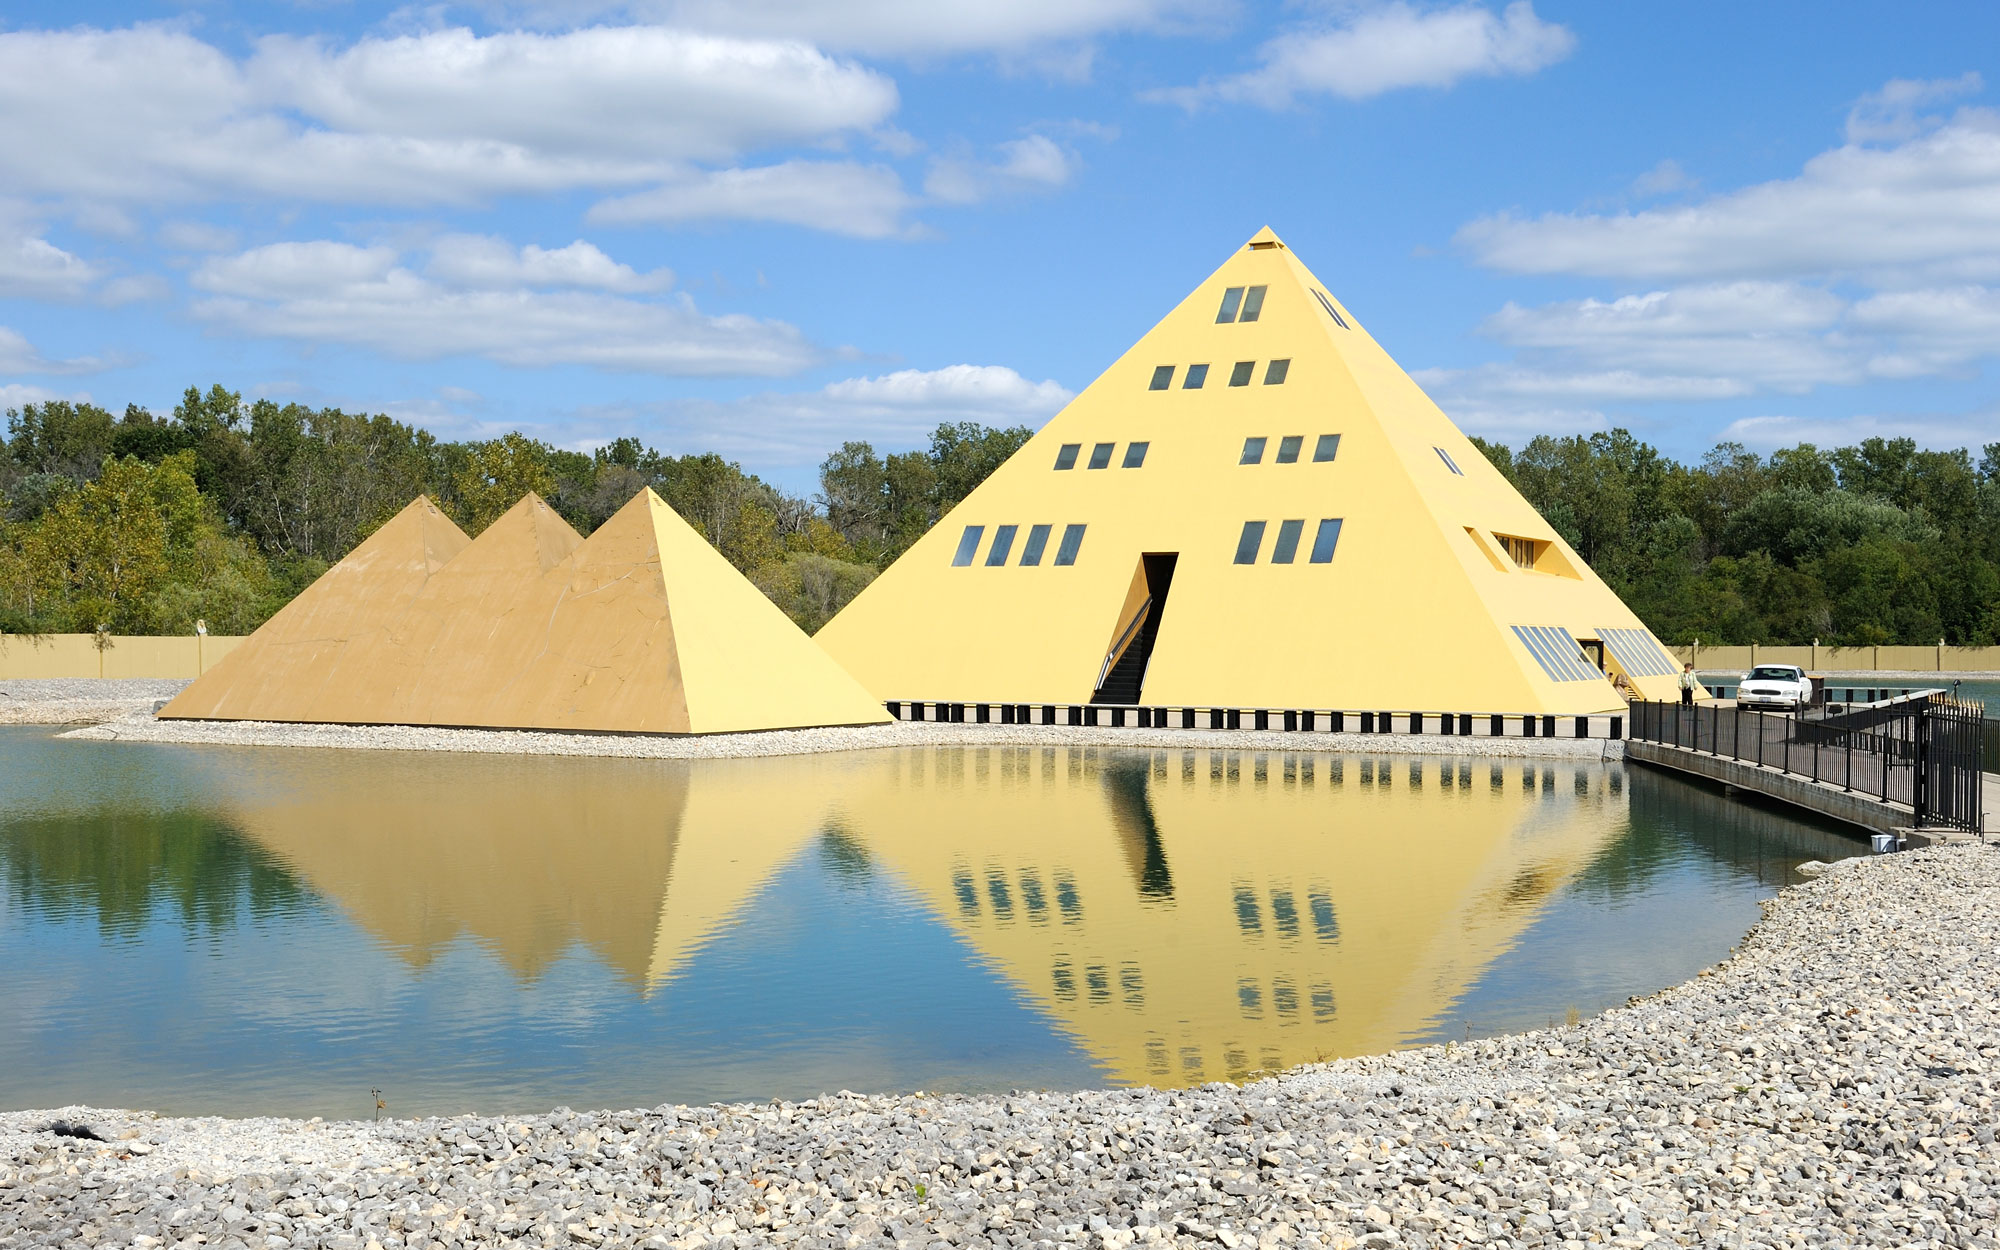 Weirdest Roadside Attractions: Illinois: Gold Pyramid House